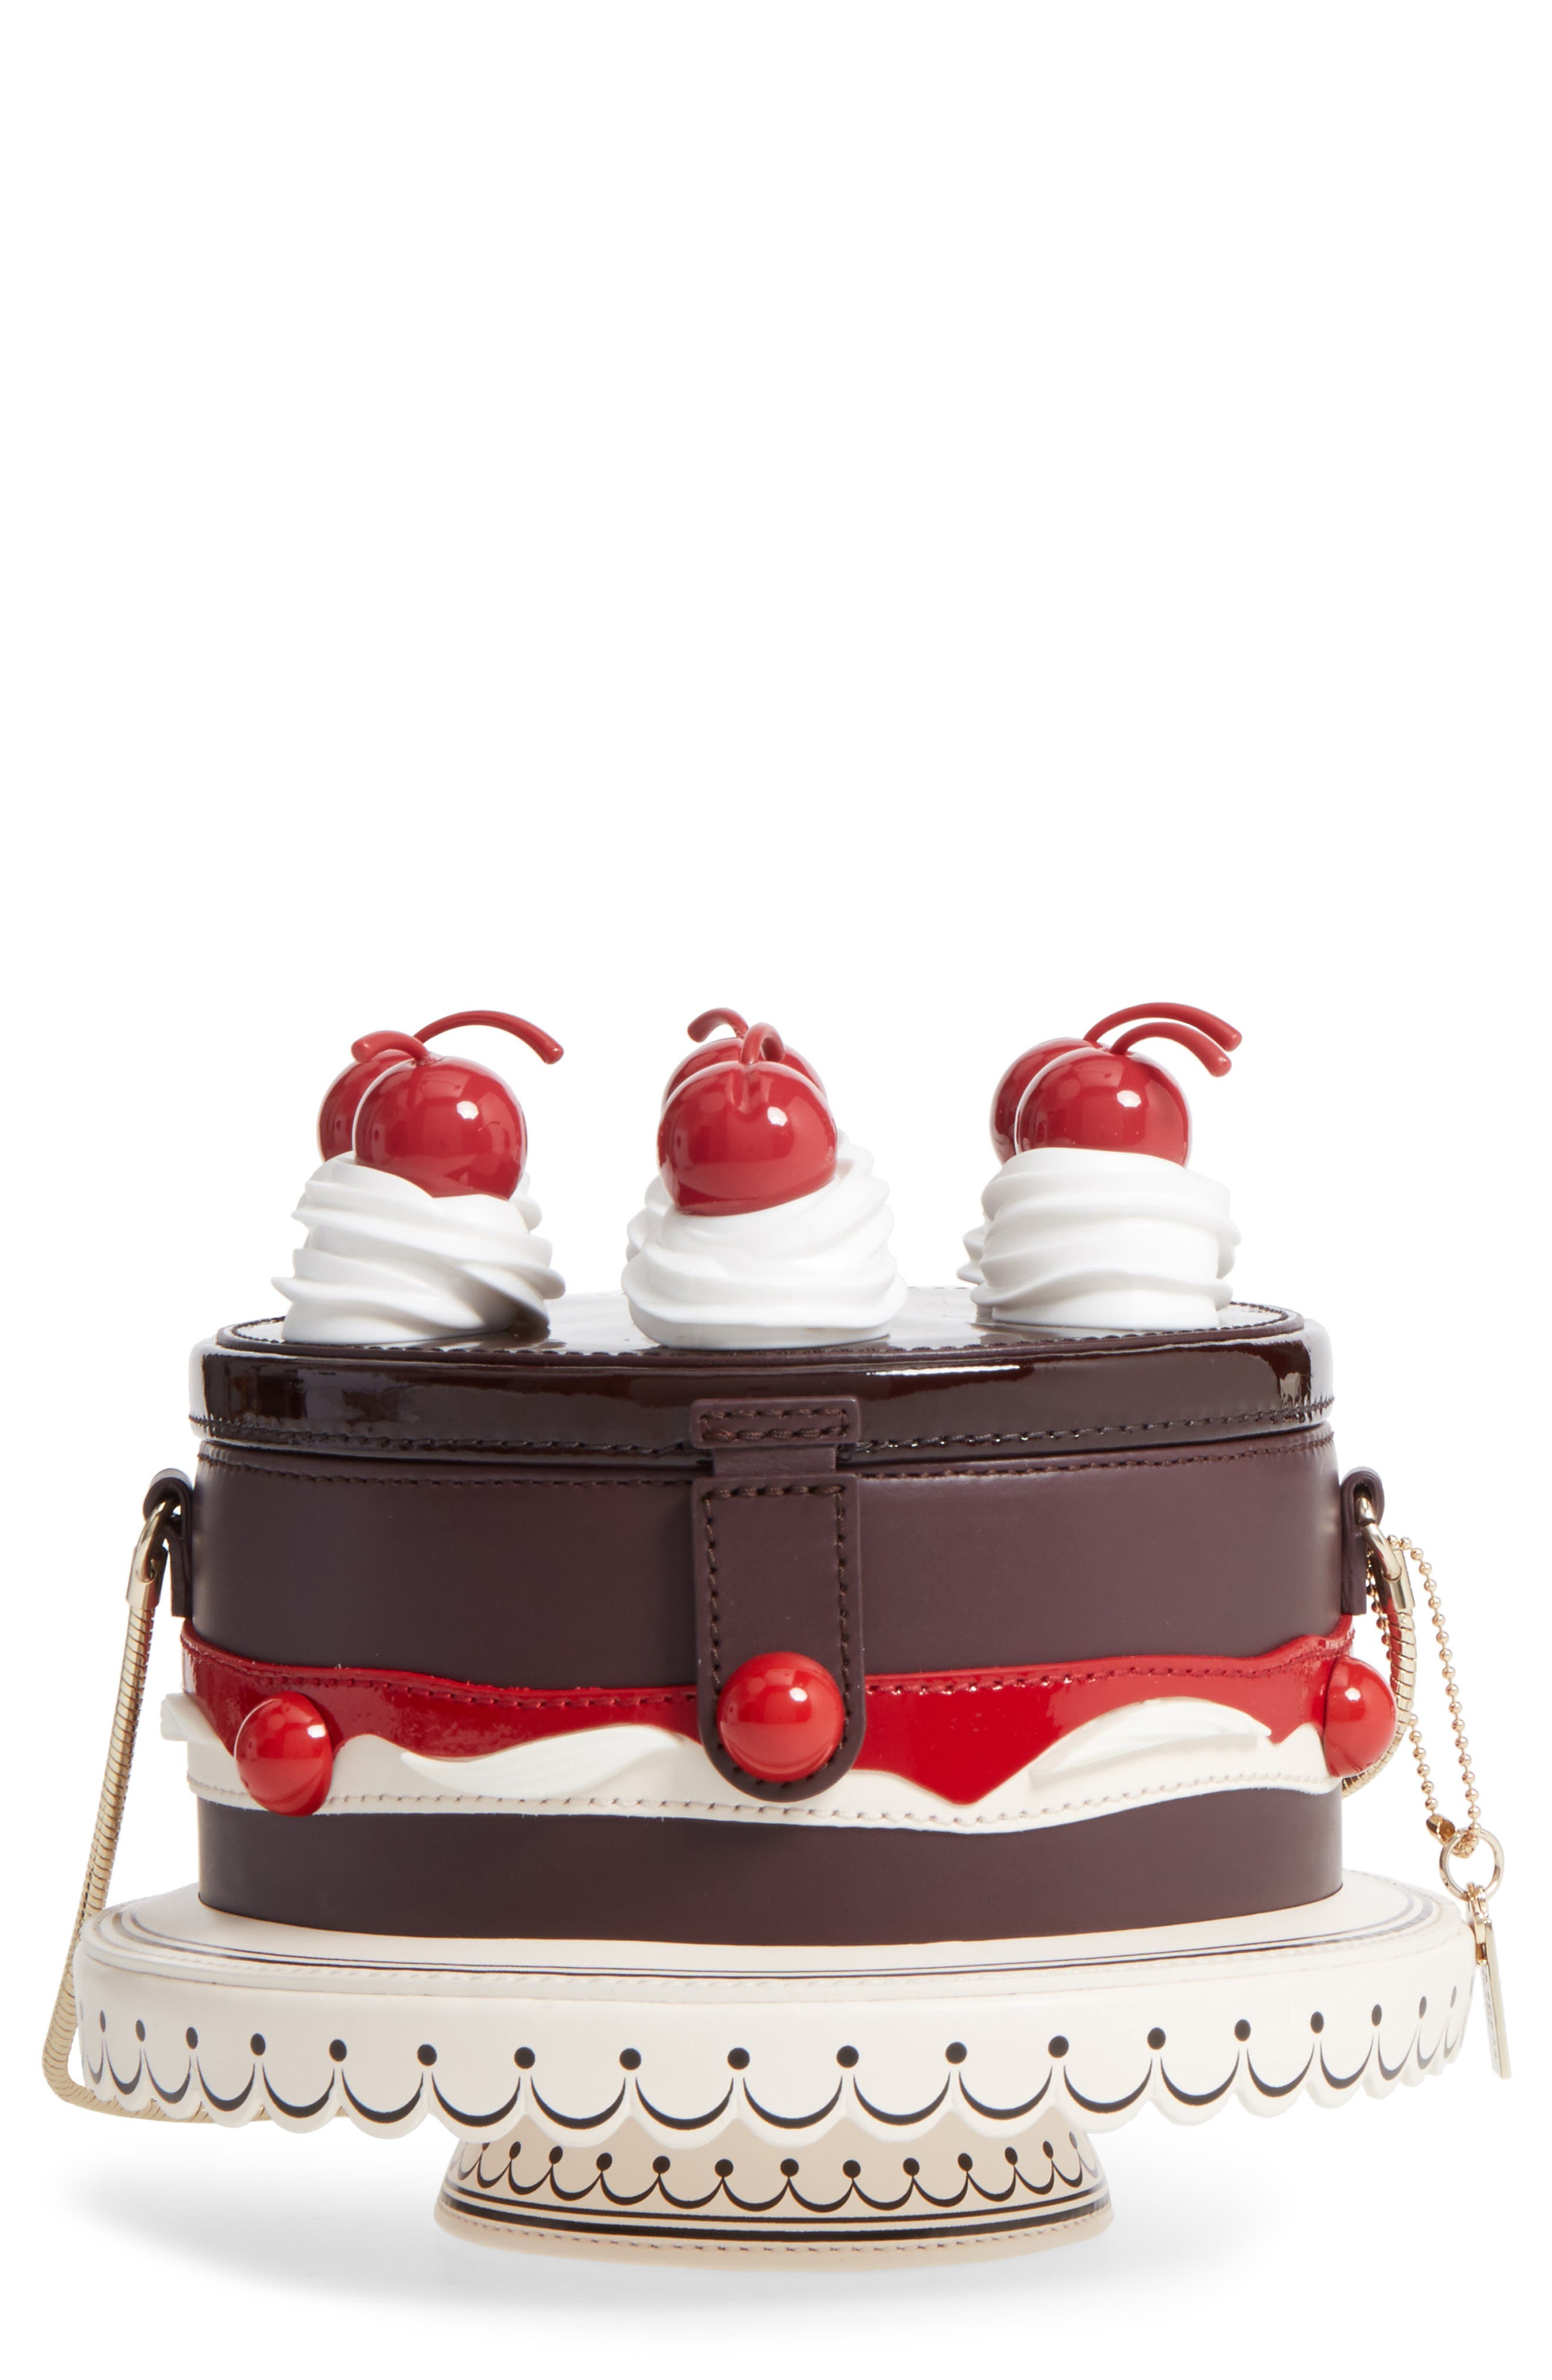 ma cherie - cherry cake leather shoulder bag,                             Main thumbnail 1, color,                             200